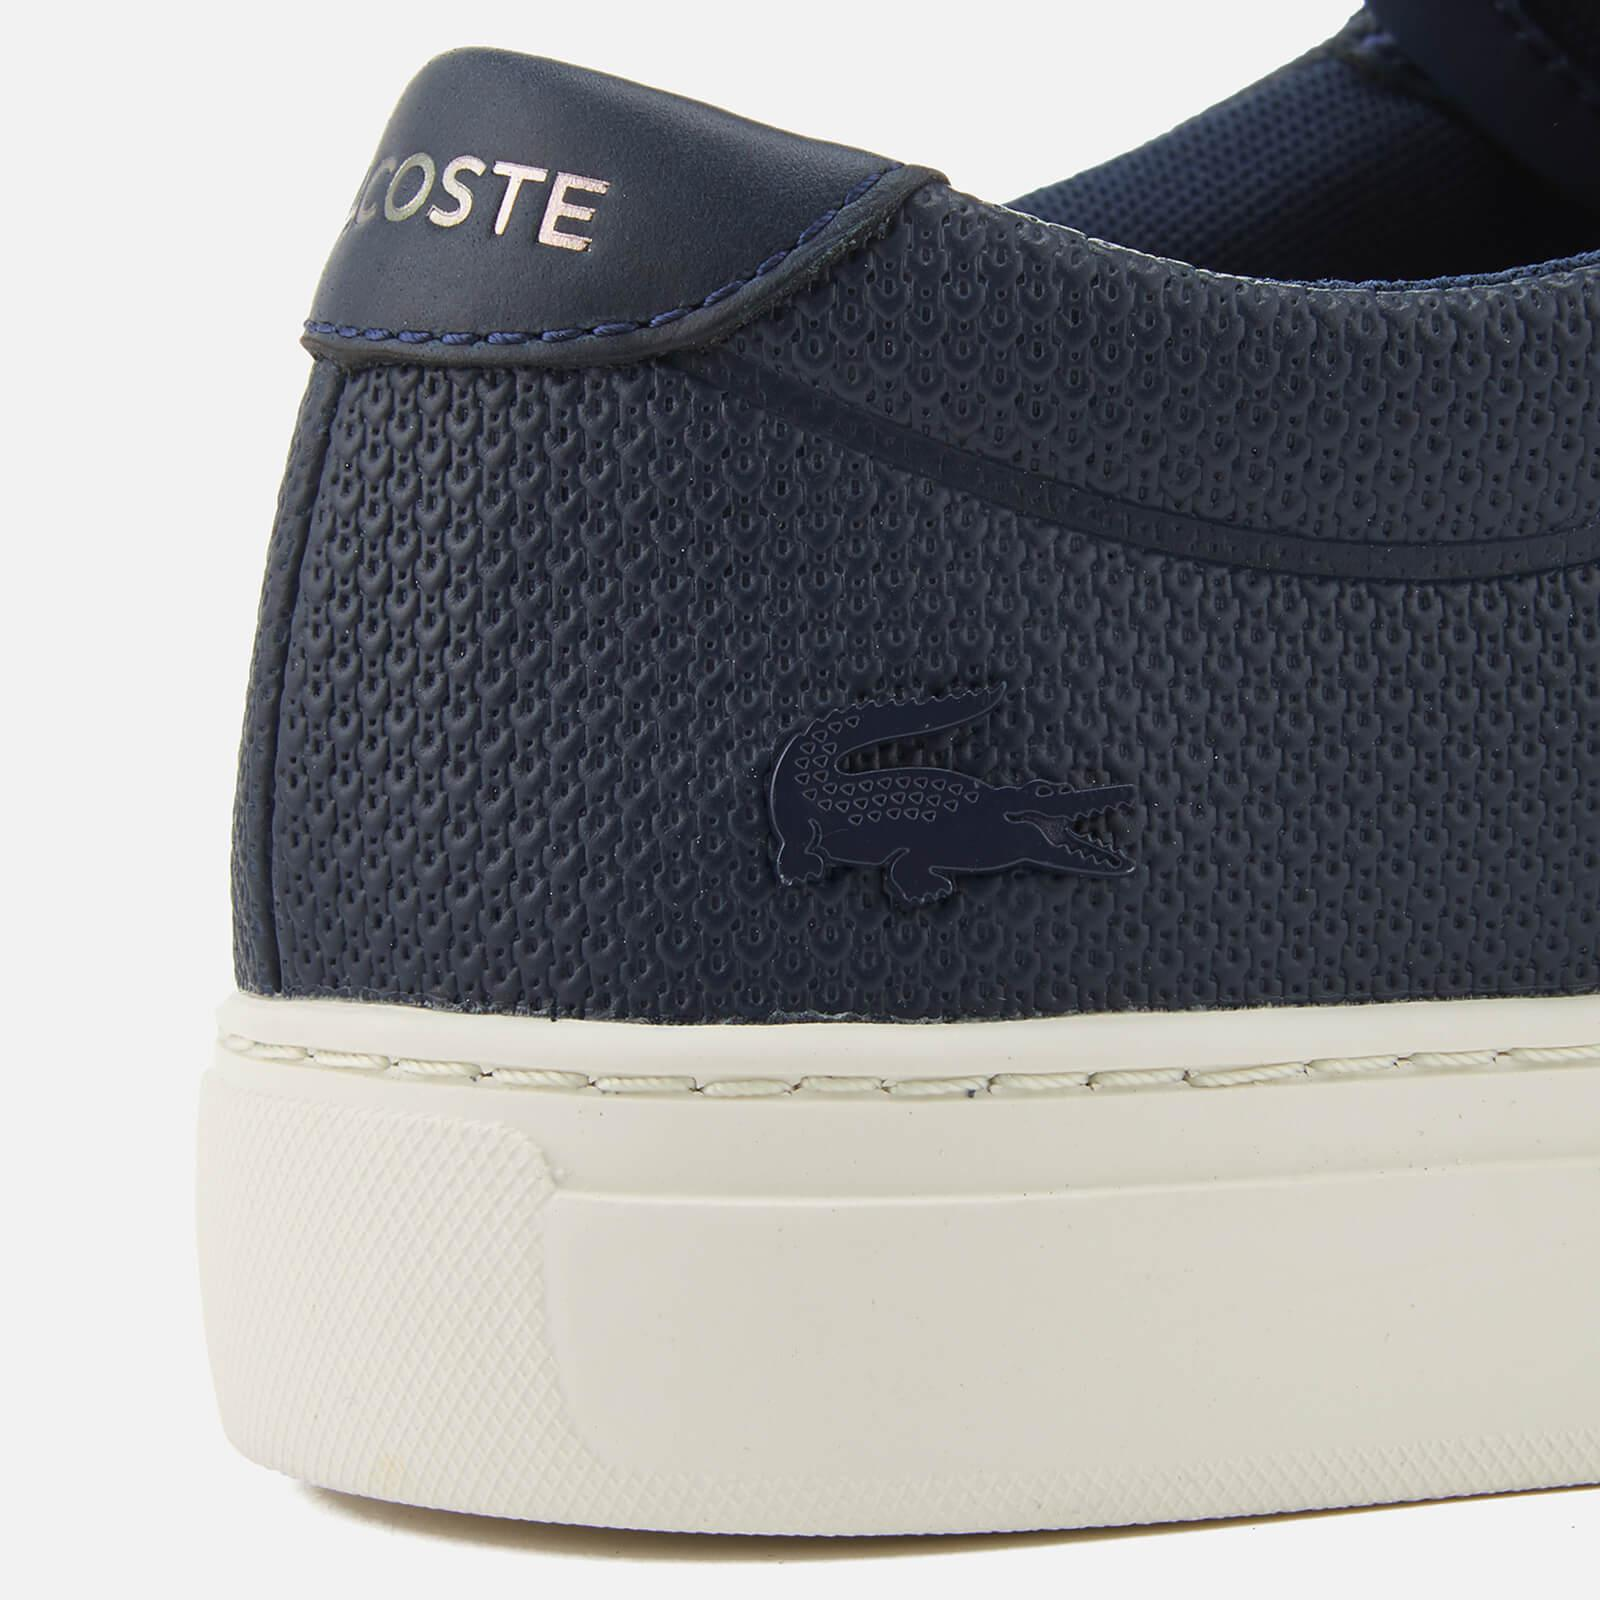 46dd770deba74 Lyst - Lacoste L.12.12 113 Leather Cupsole Trainers in Blue for Men